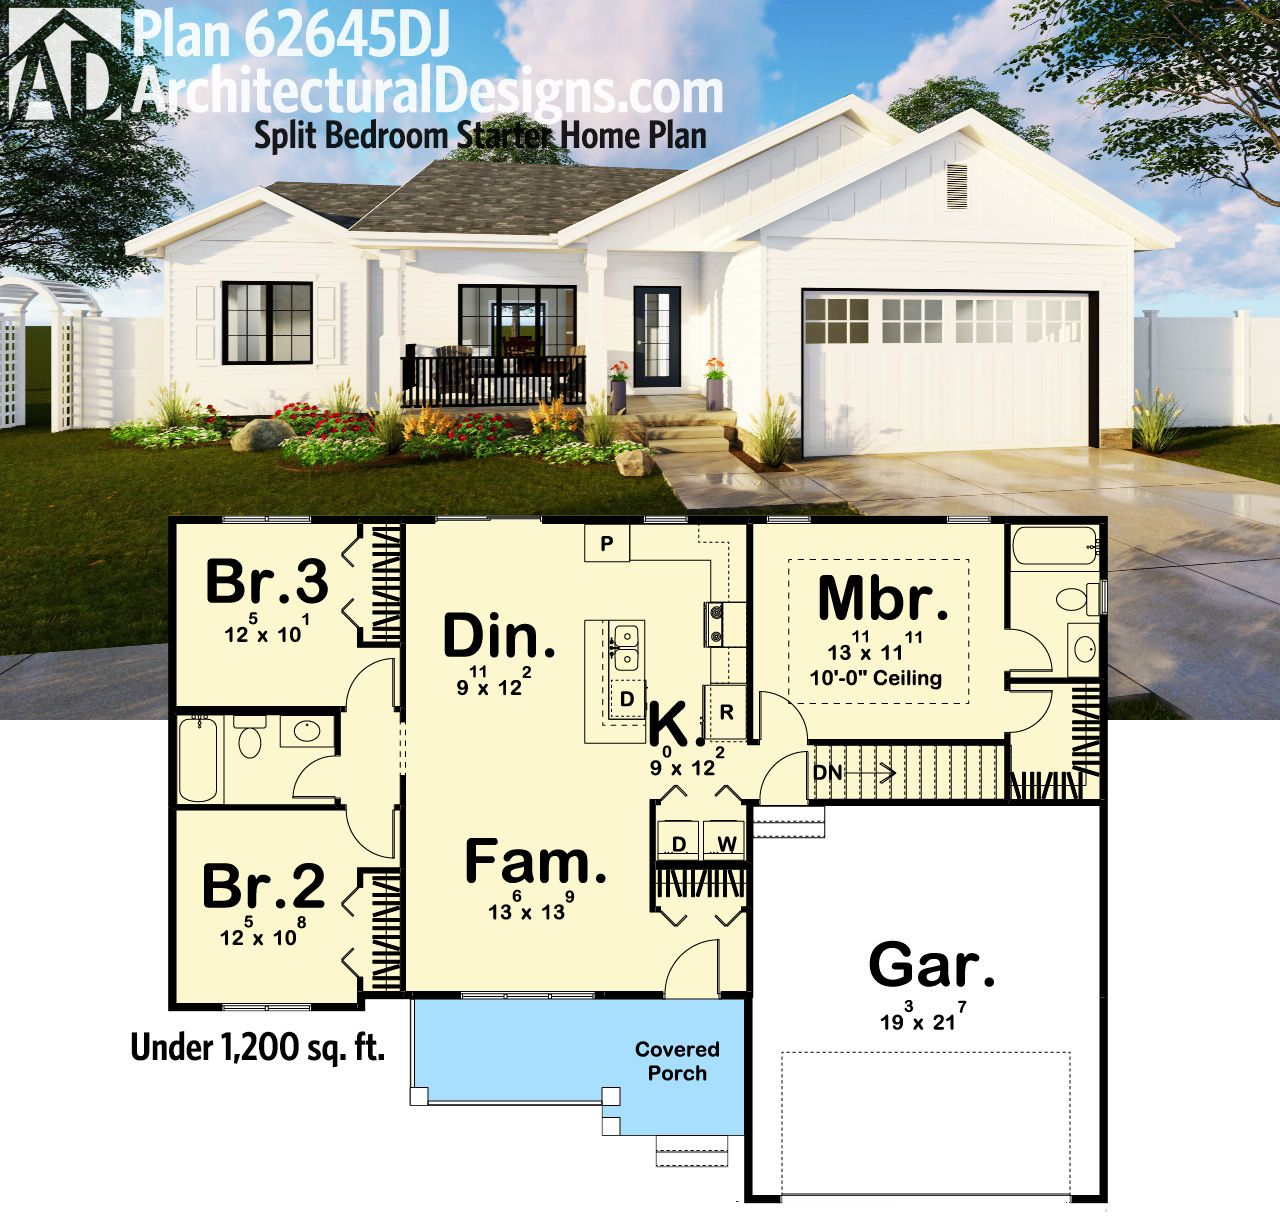 plan 62645dj split bedroom starter home plan square feet